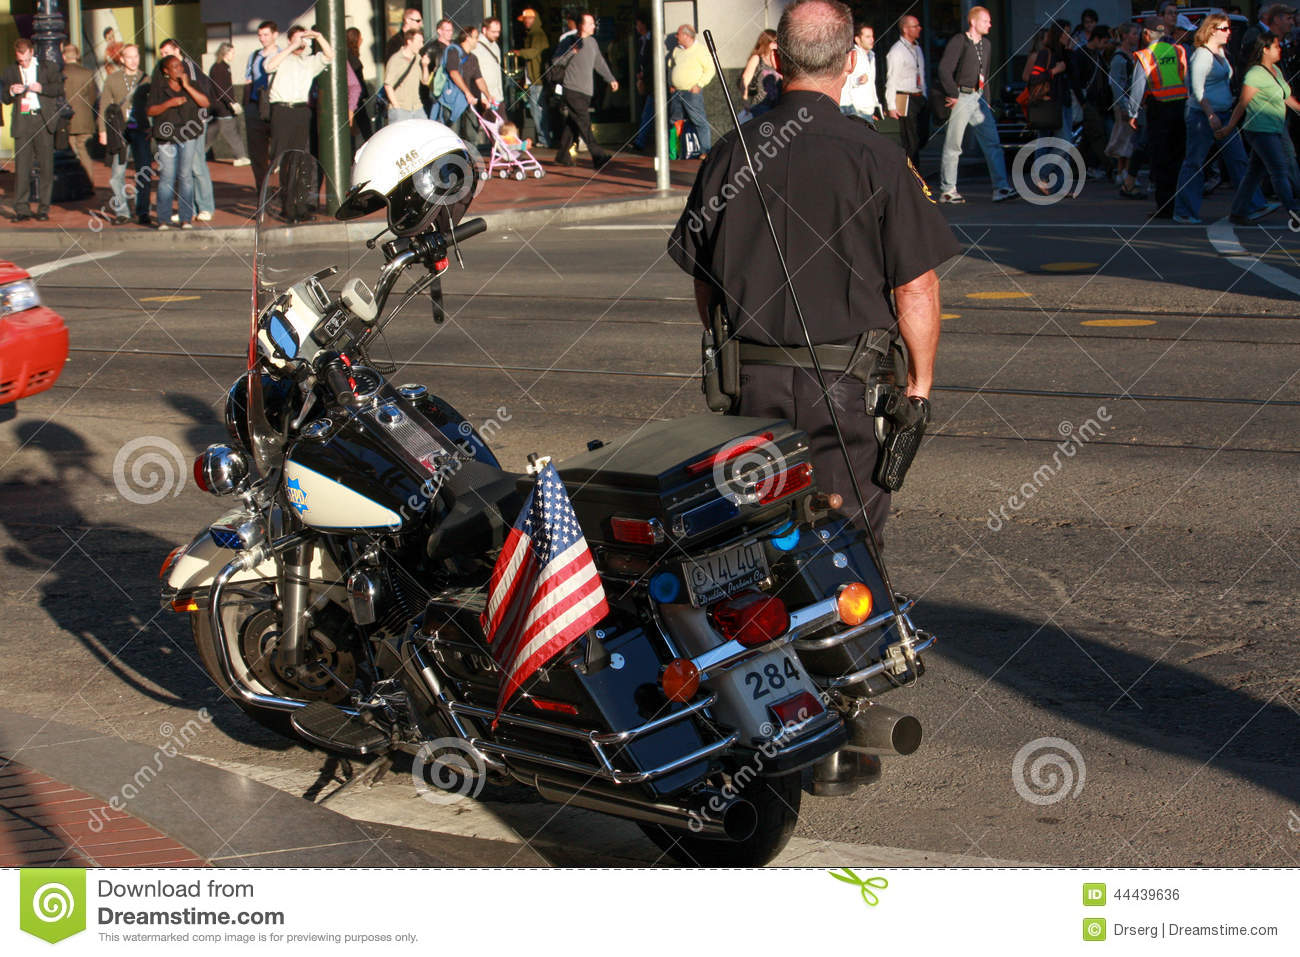 us policeman In the united states, there are some law enforcement agencies that are not called police forces but carry out similar work, such as the federal bureau of investigations one common type is a sheriff's office (also sheriff's department ), an agency that is led by a sheriff .